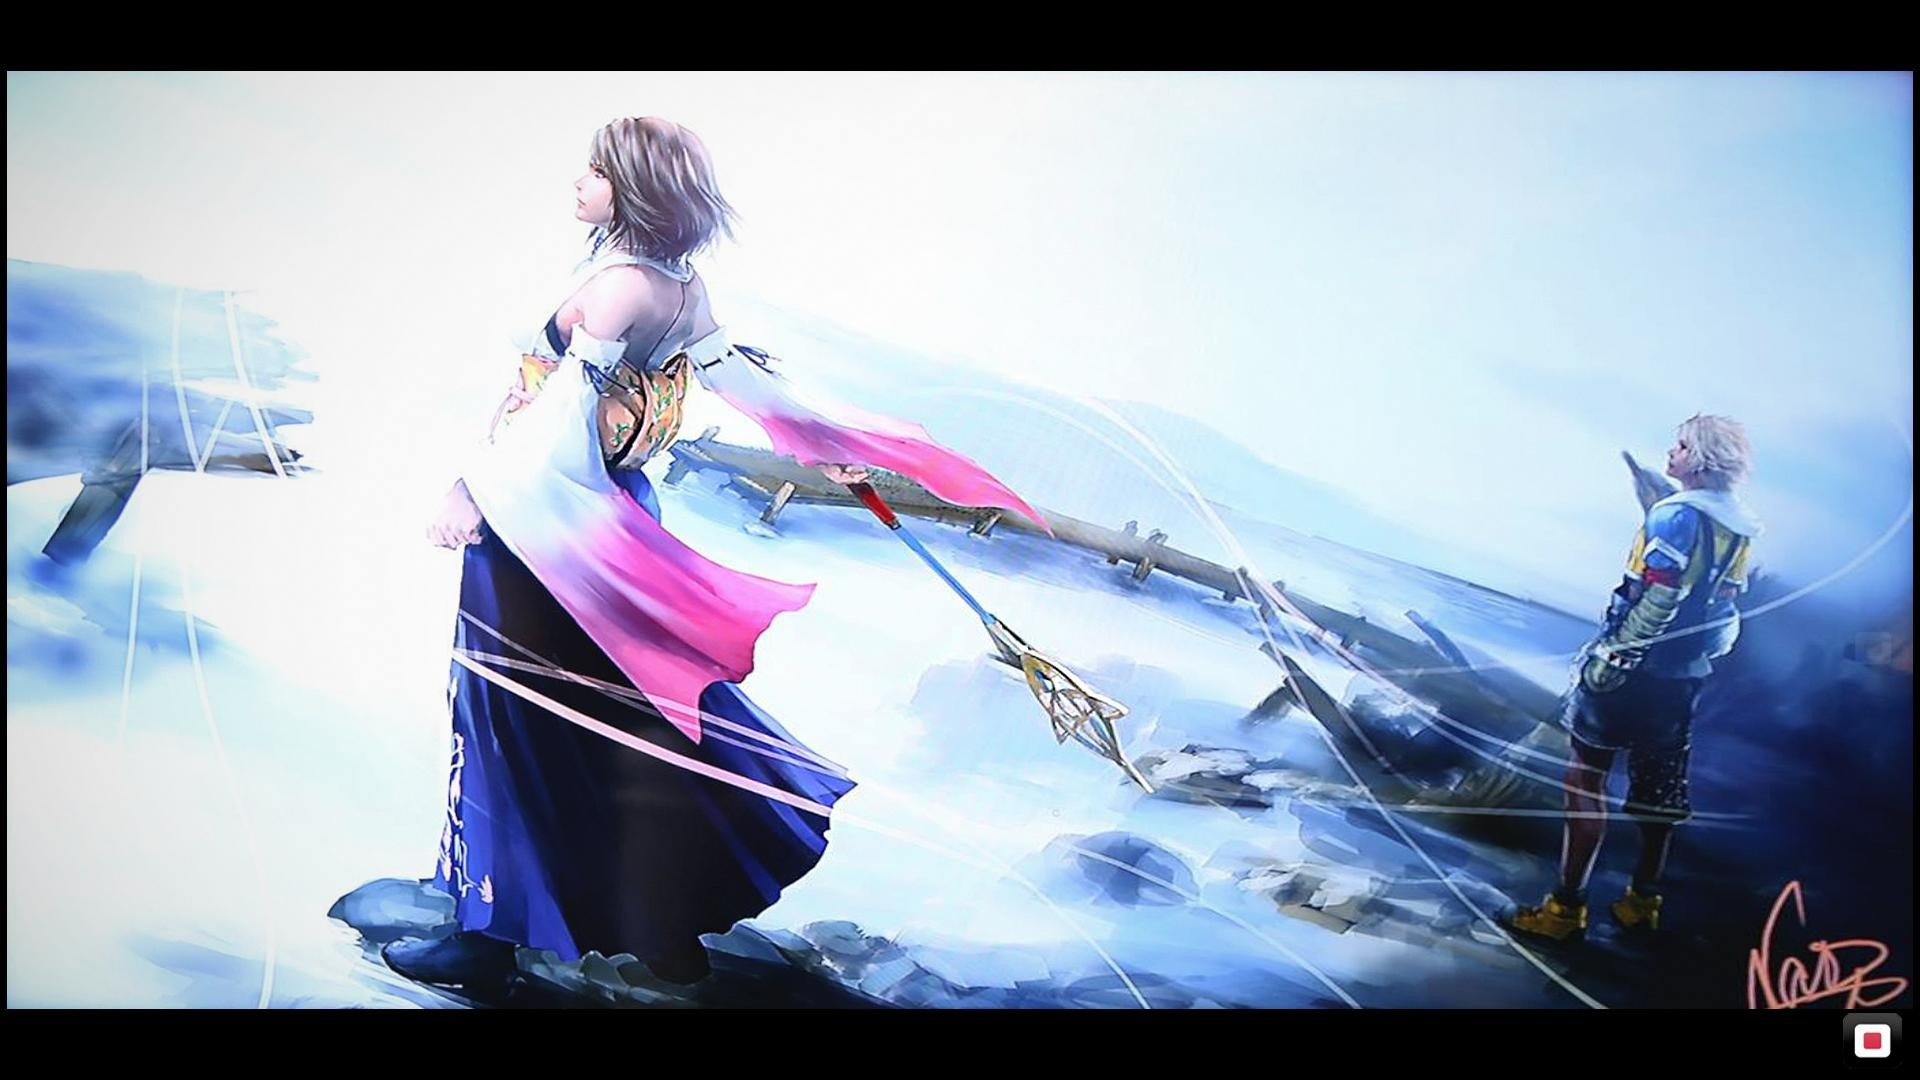 1920x1080 Final Fantasy X Wallpapers